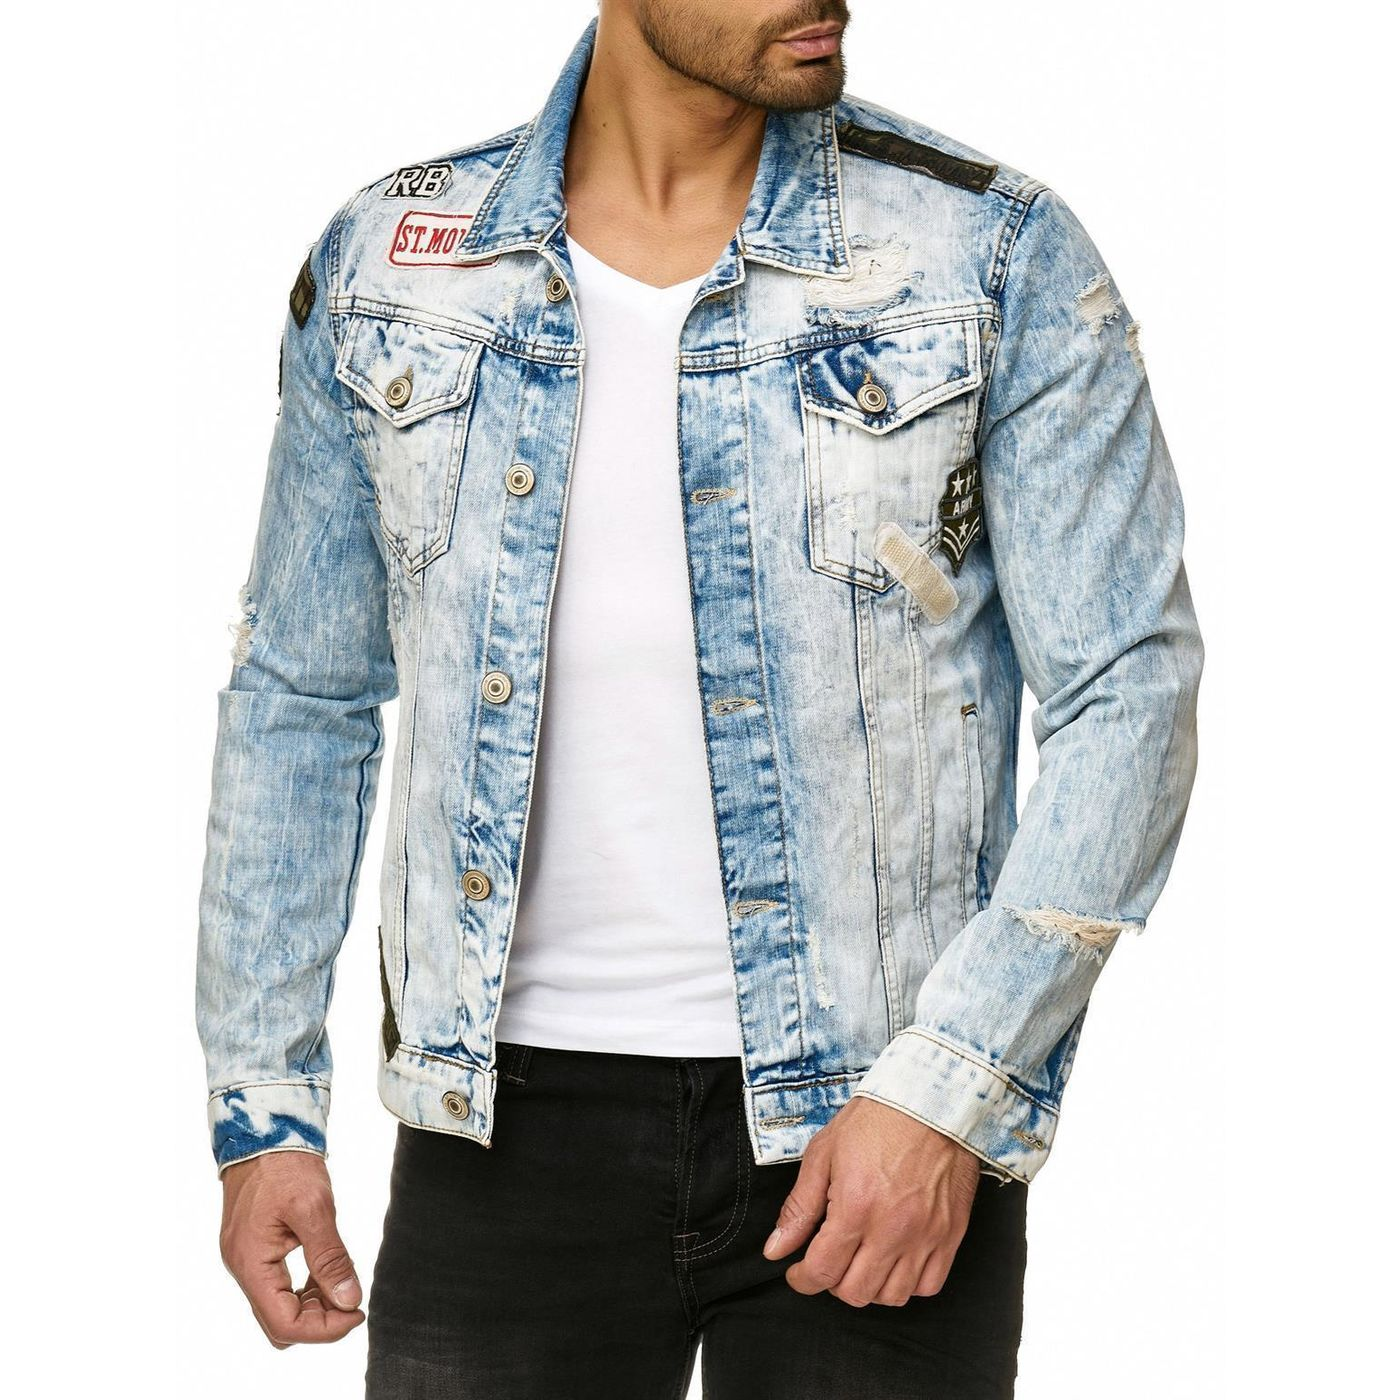 red bridge herren jeansjacke bold duty military destroyed blau m6043 64 99. Black Bedroom Furniture Sets. Home Design Ideas